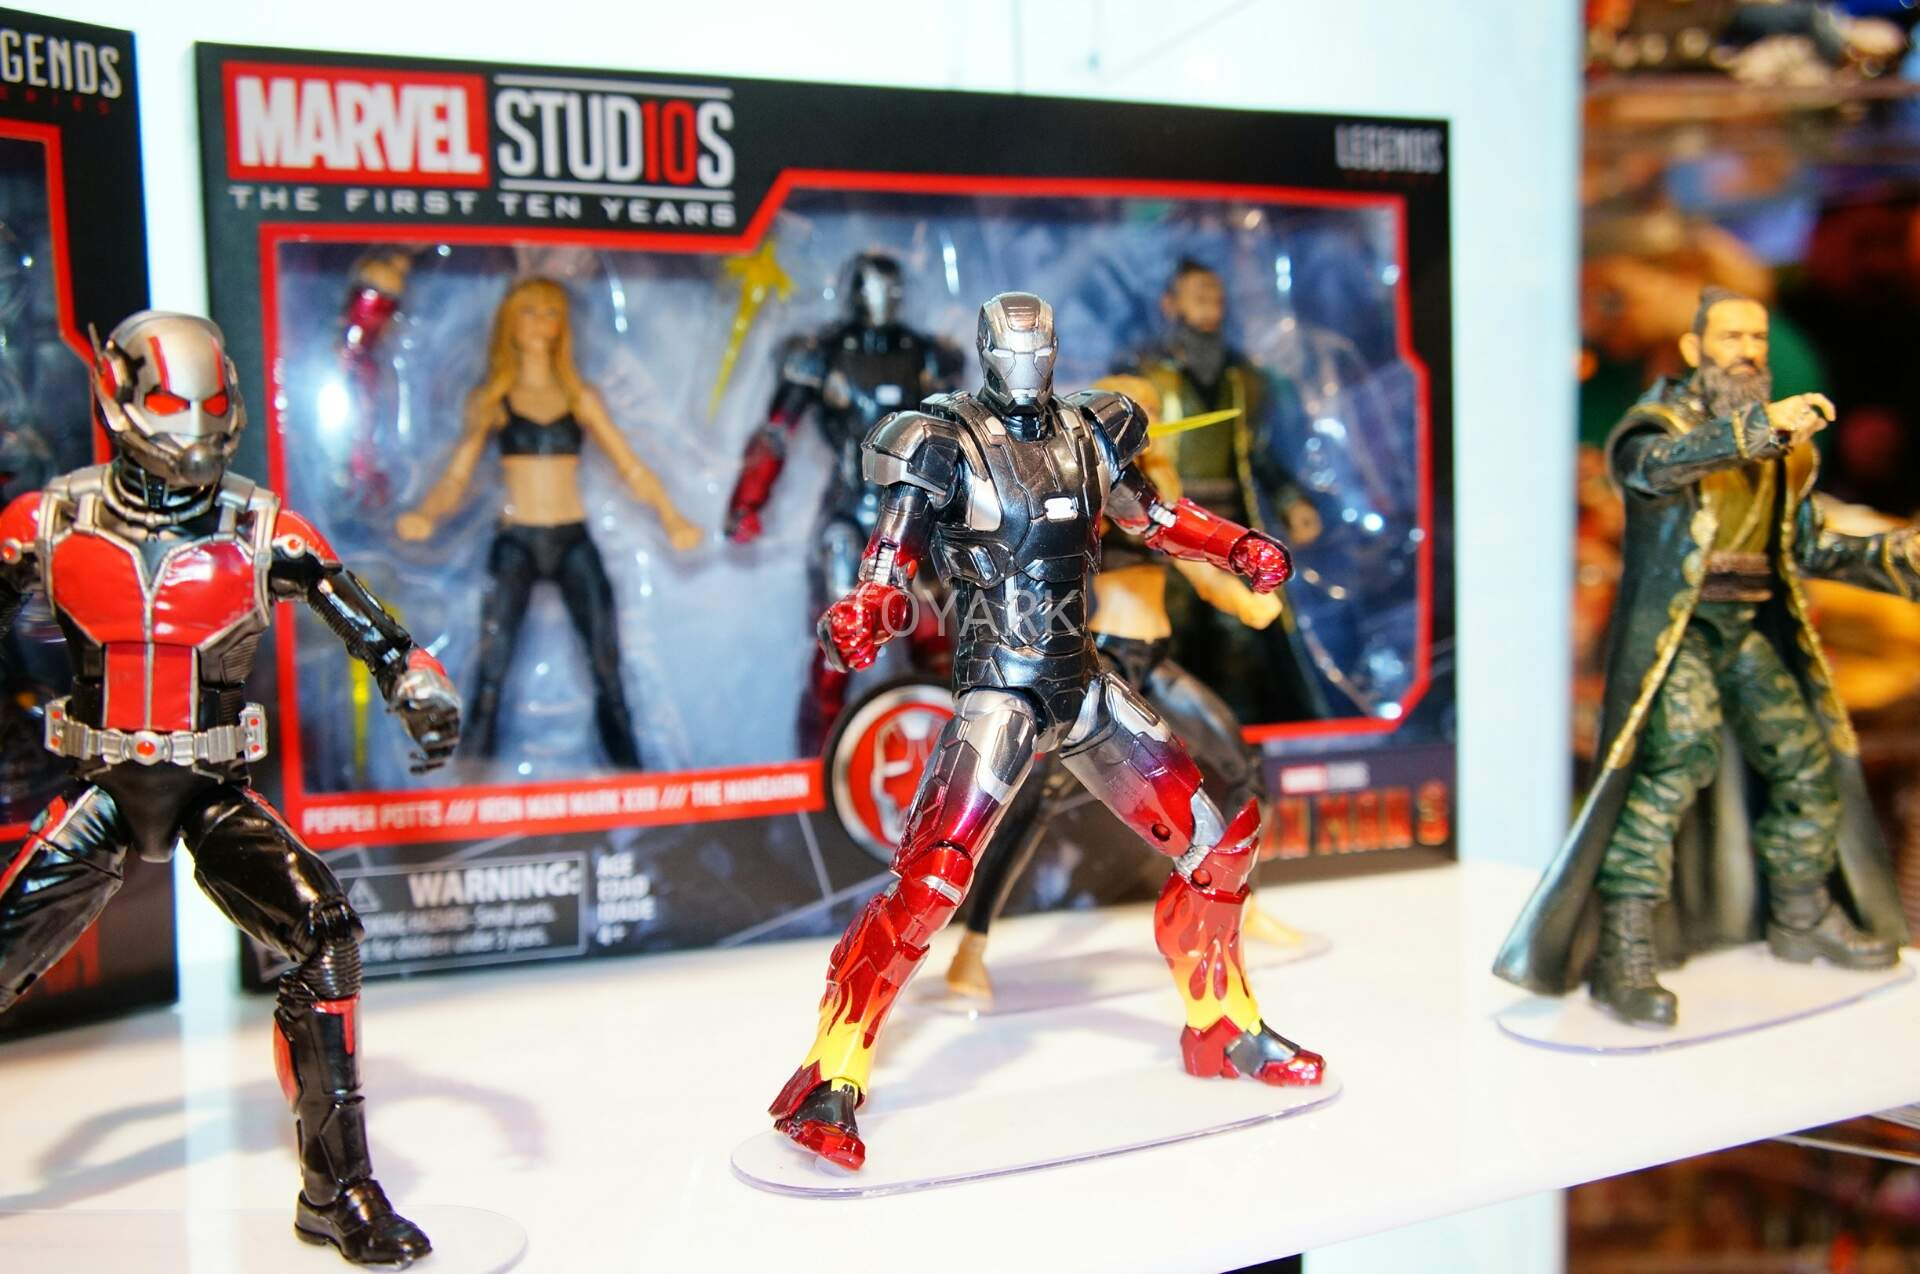 Toy Fair 2018 - Hasbro - Marvel Legends - Marvel Studios - Homem de Ferro 3